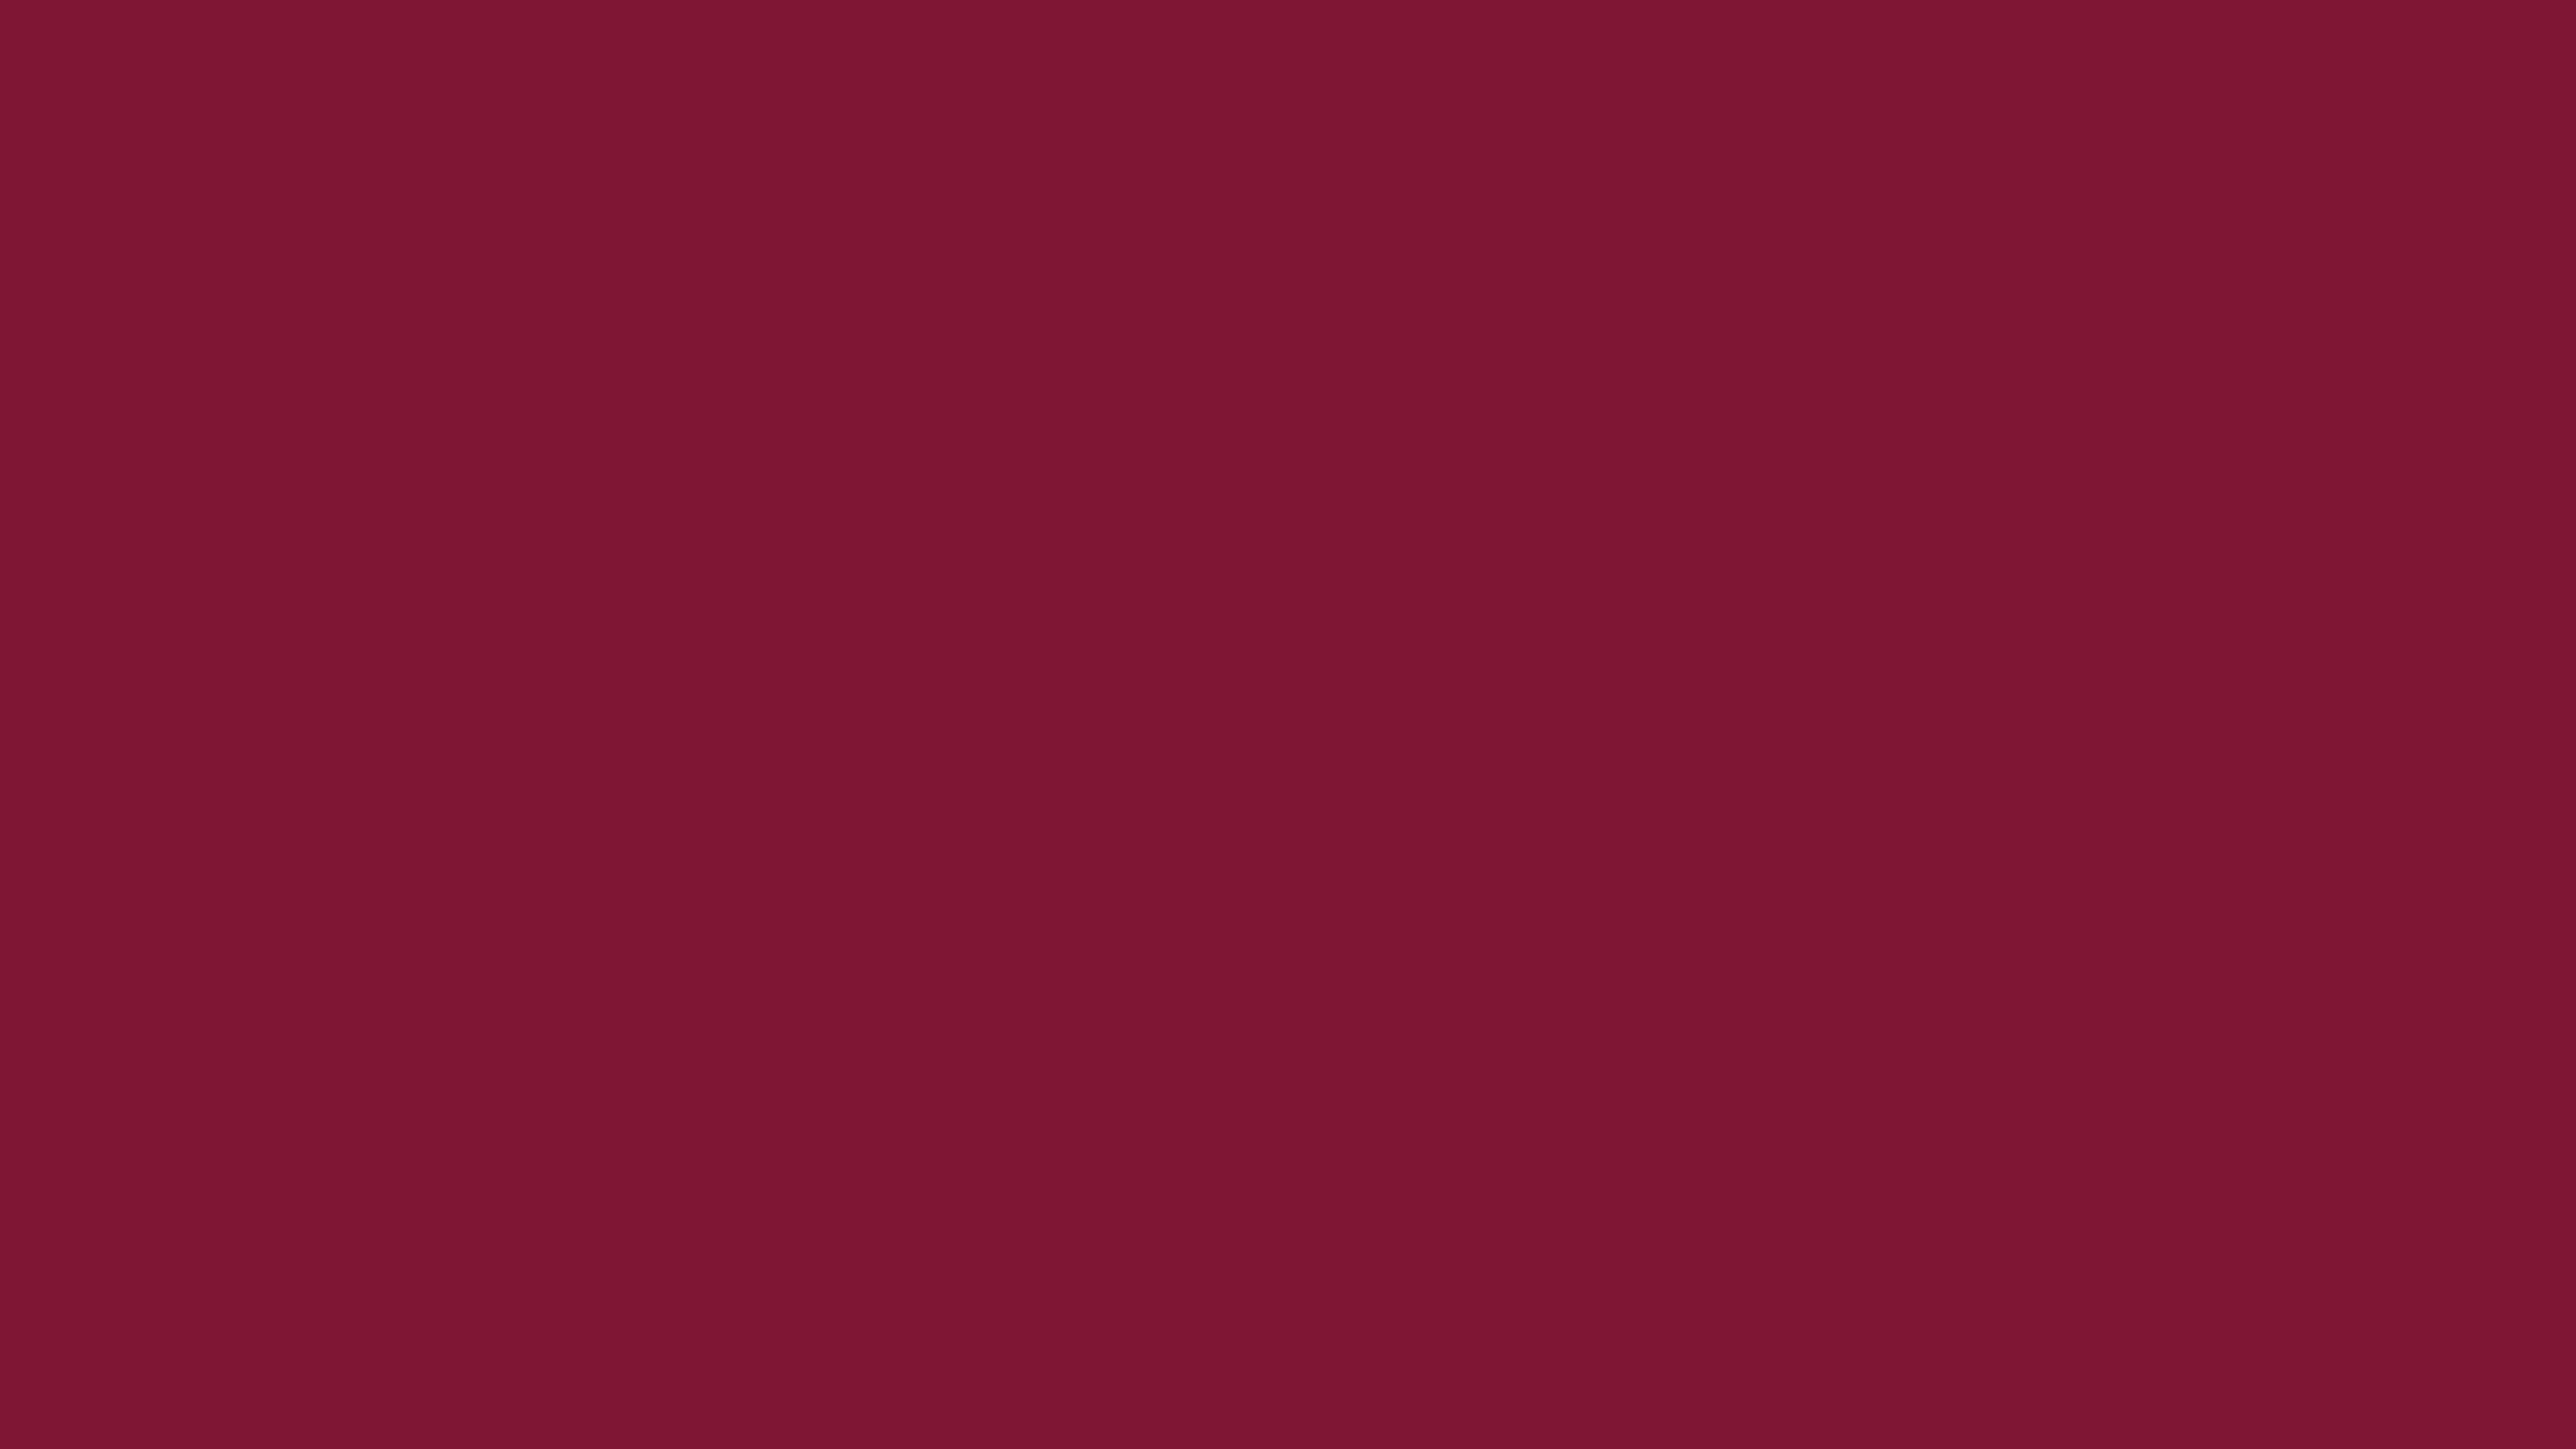 3840x2160 Claret Solid Color Background